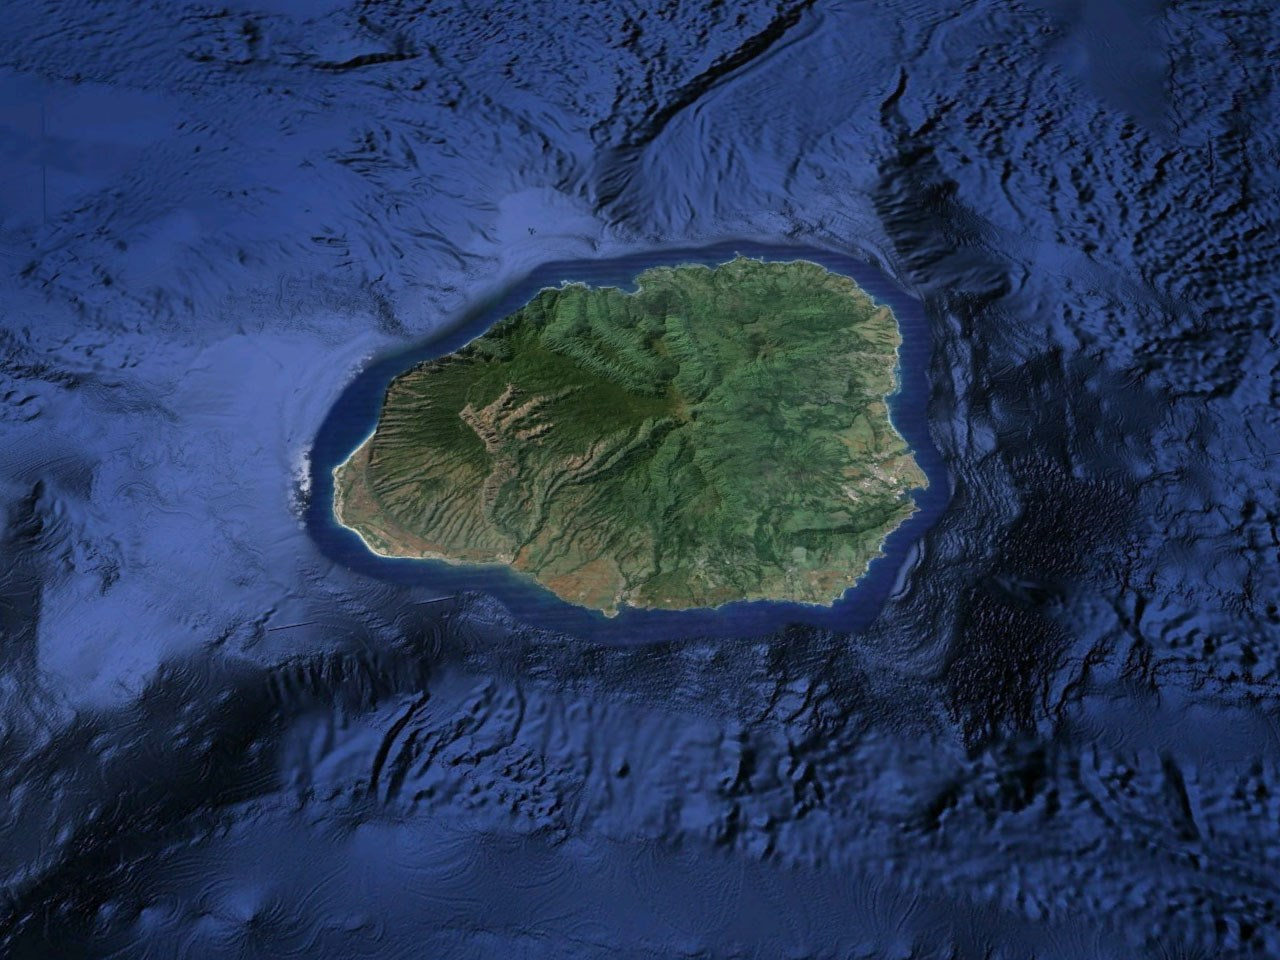 70-year-old man from Utah dies while body boarding in Hawaii